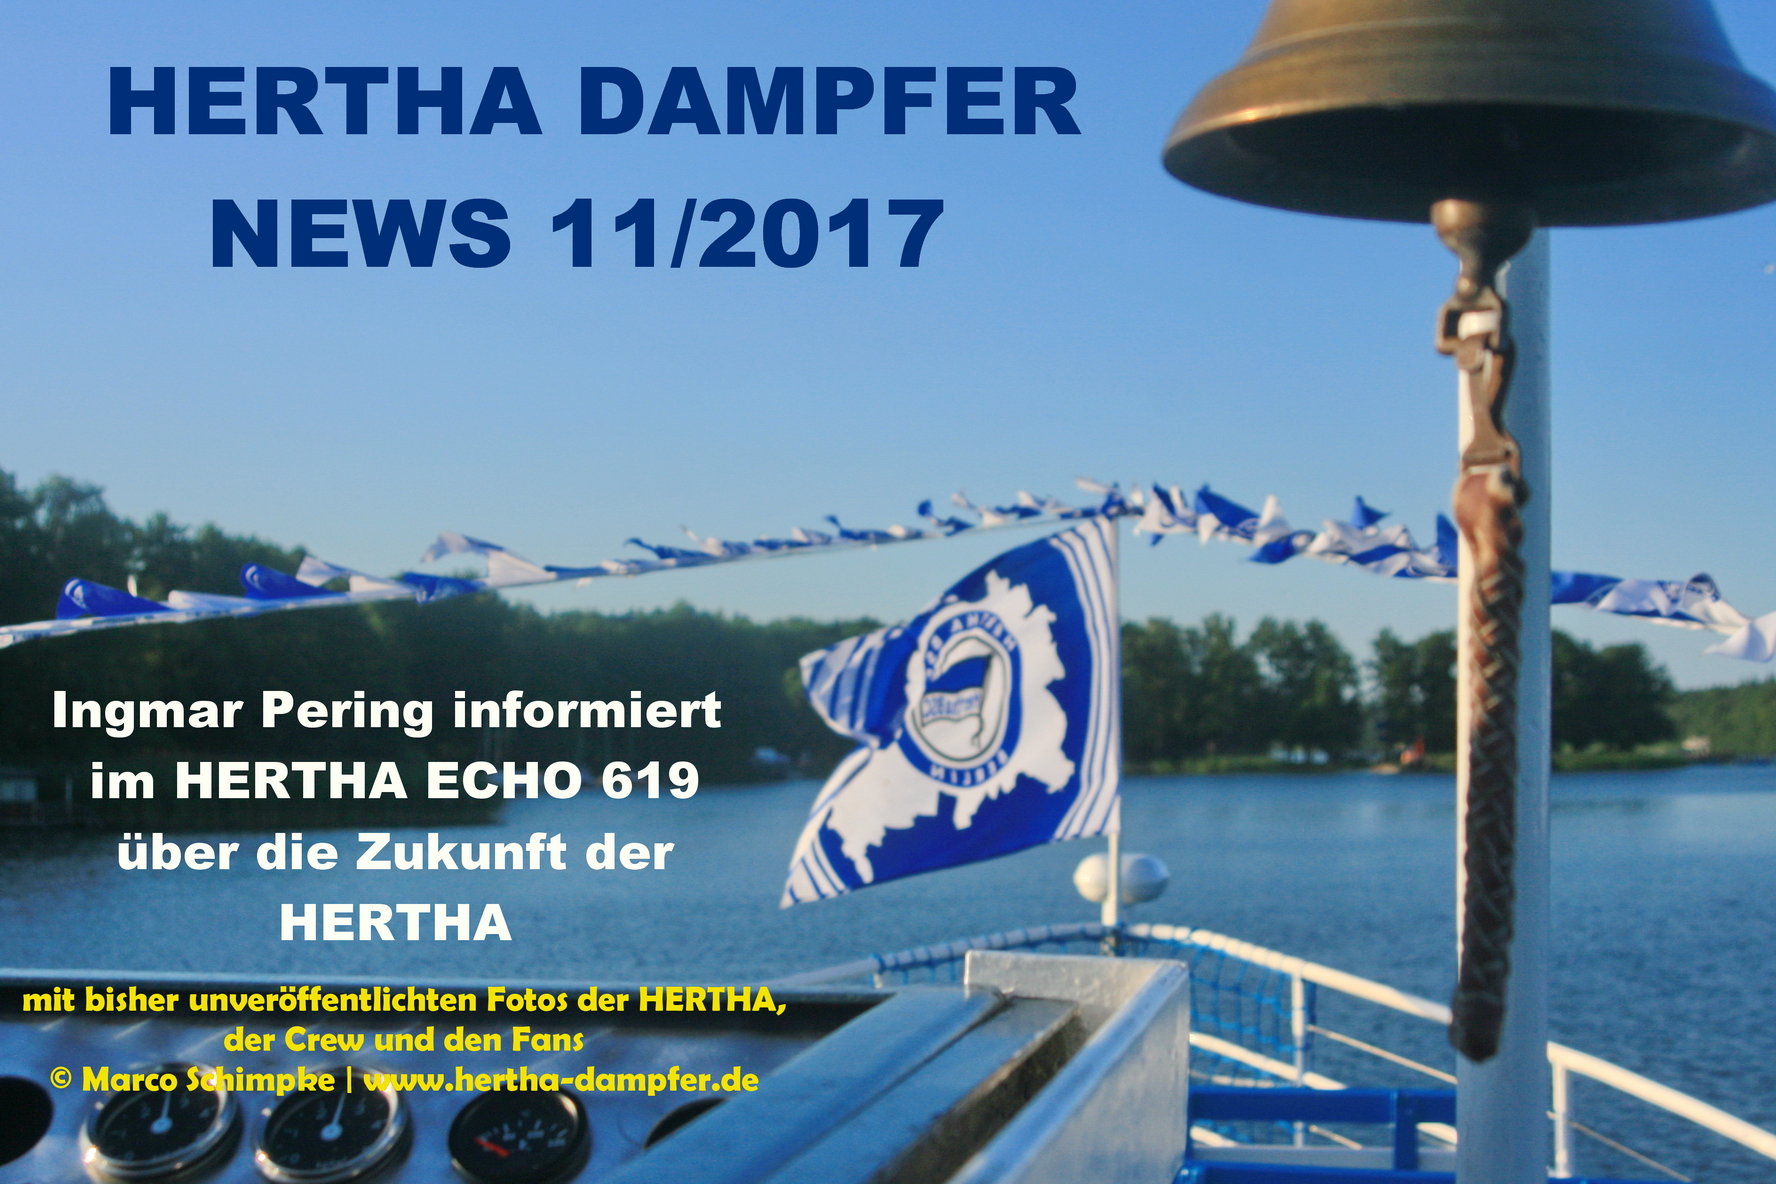 HERTHA DAMPFER News 11/2017